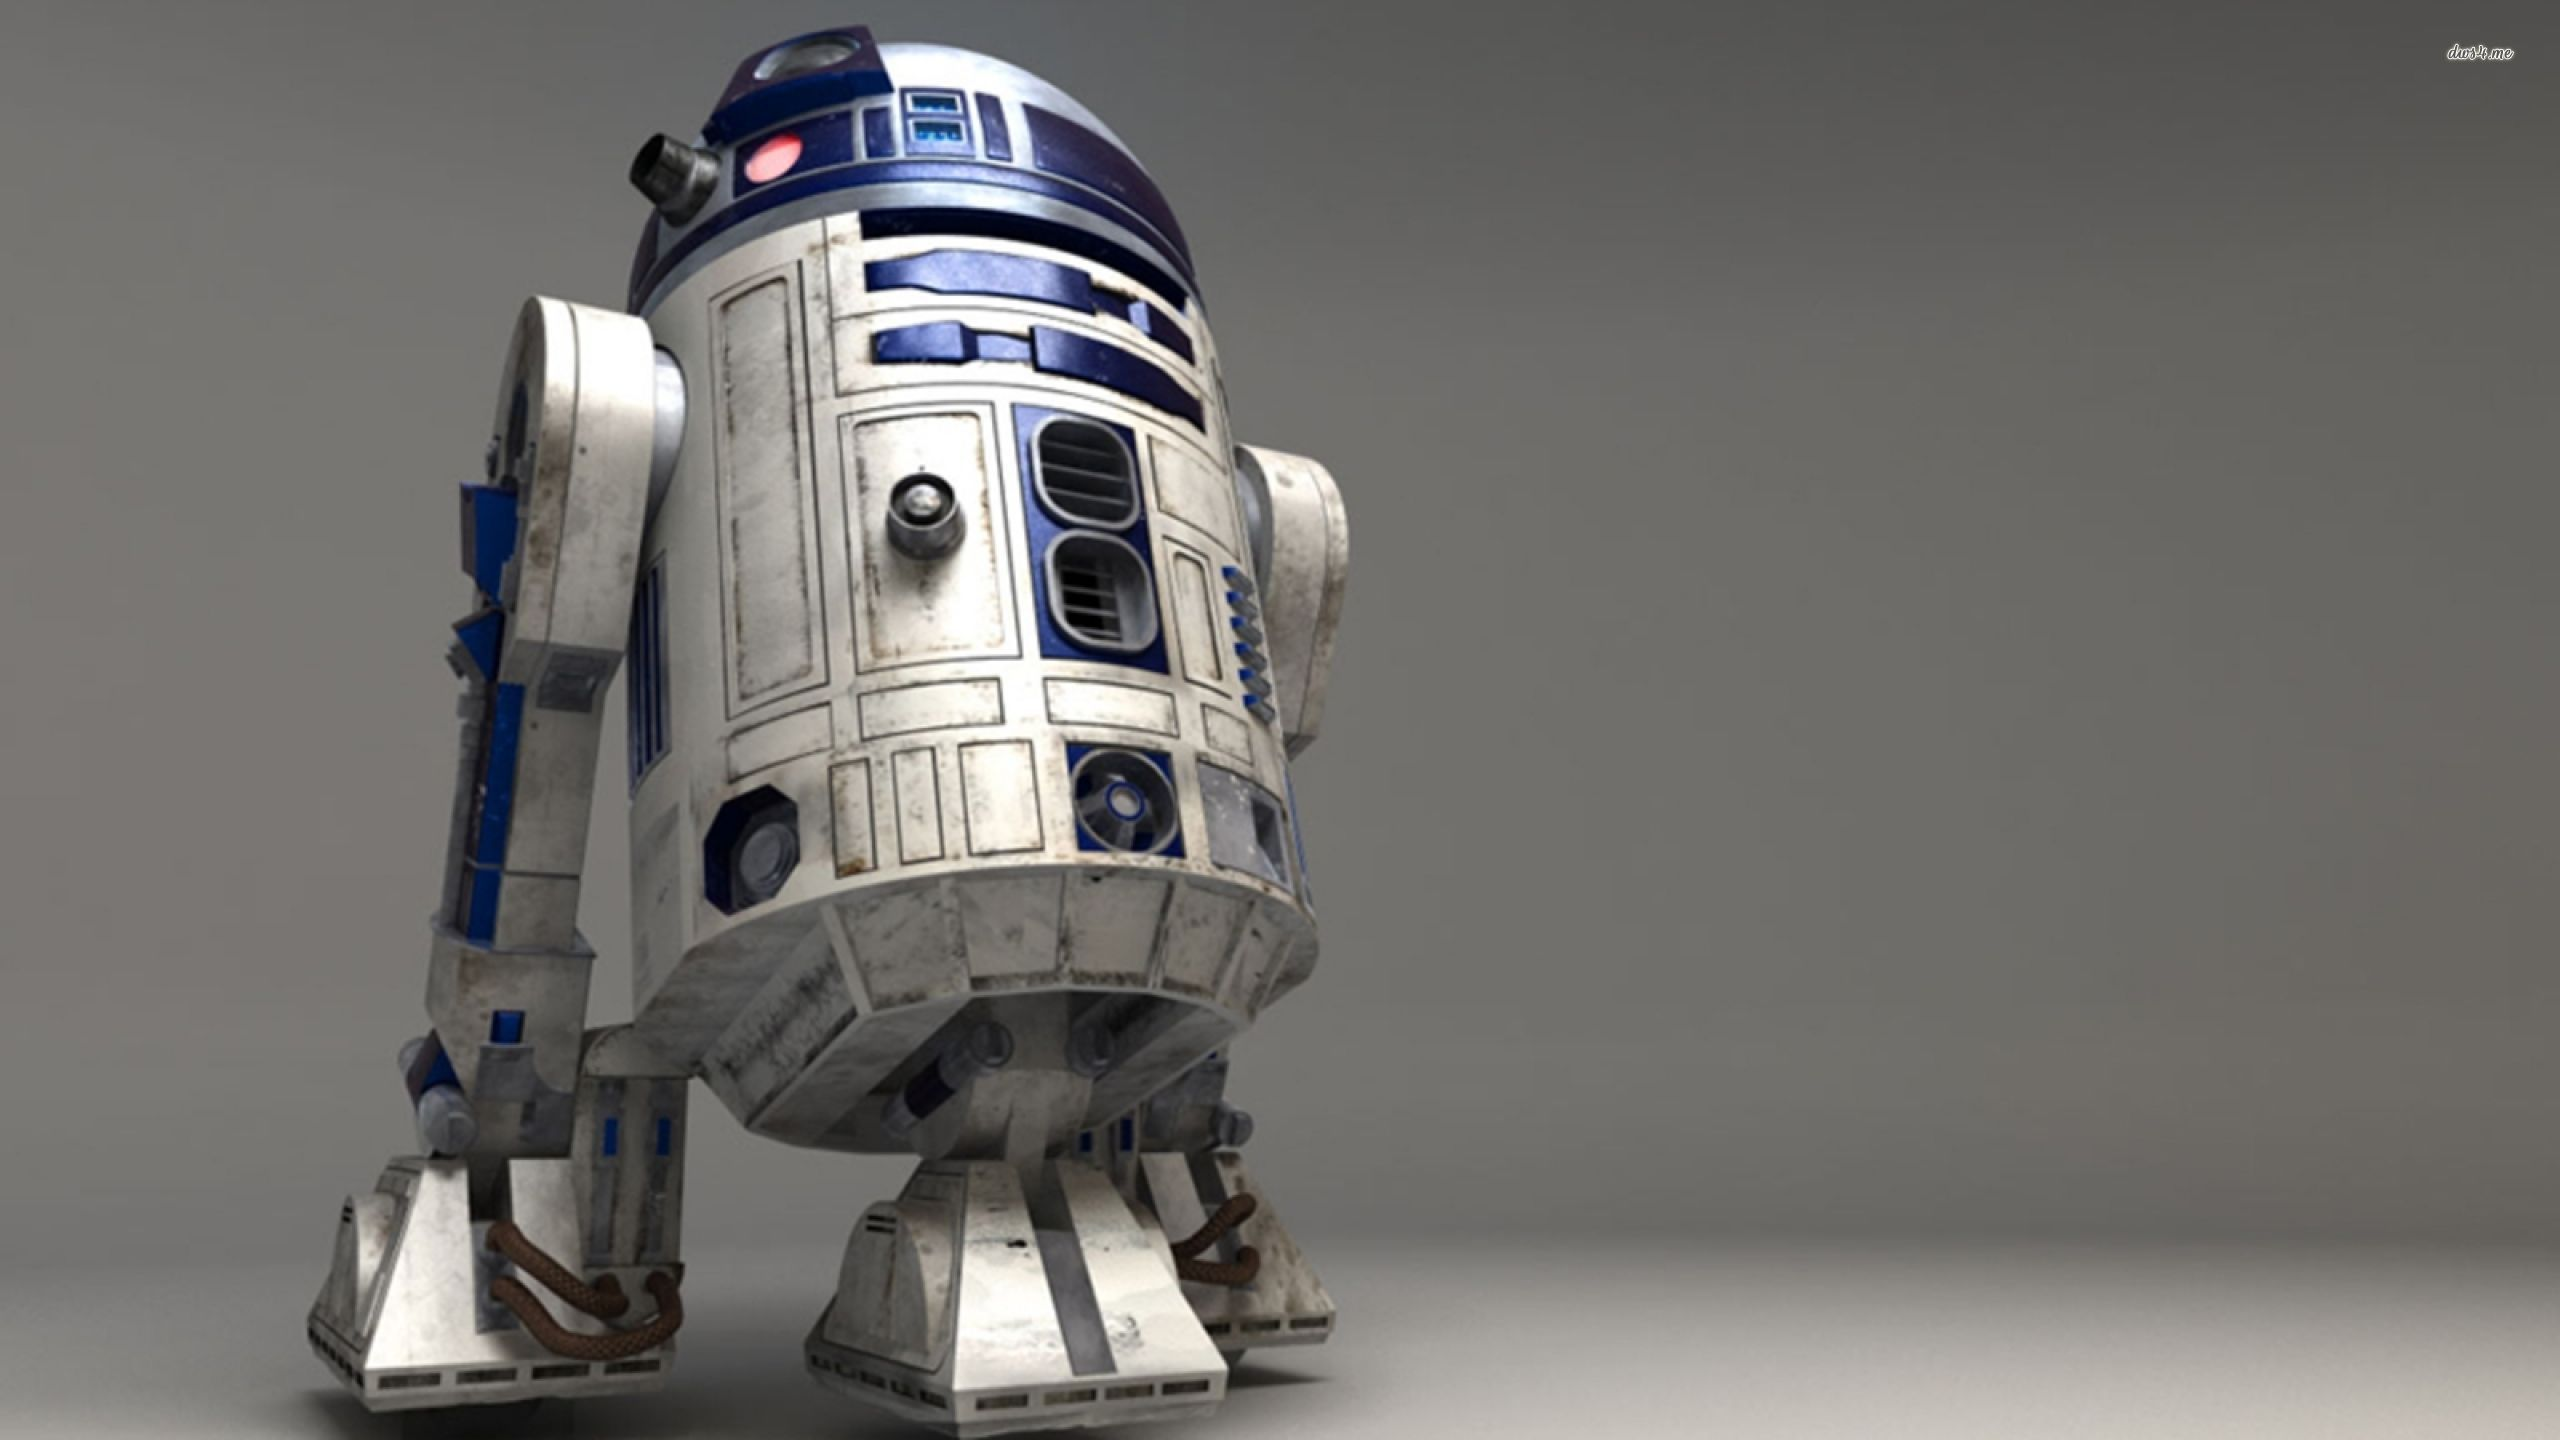 R2-D2 Wallpapers - Wallpaper Cave